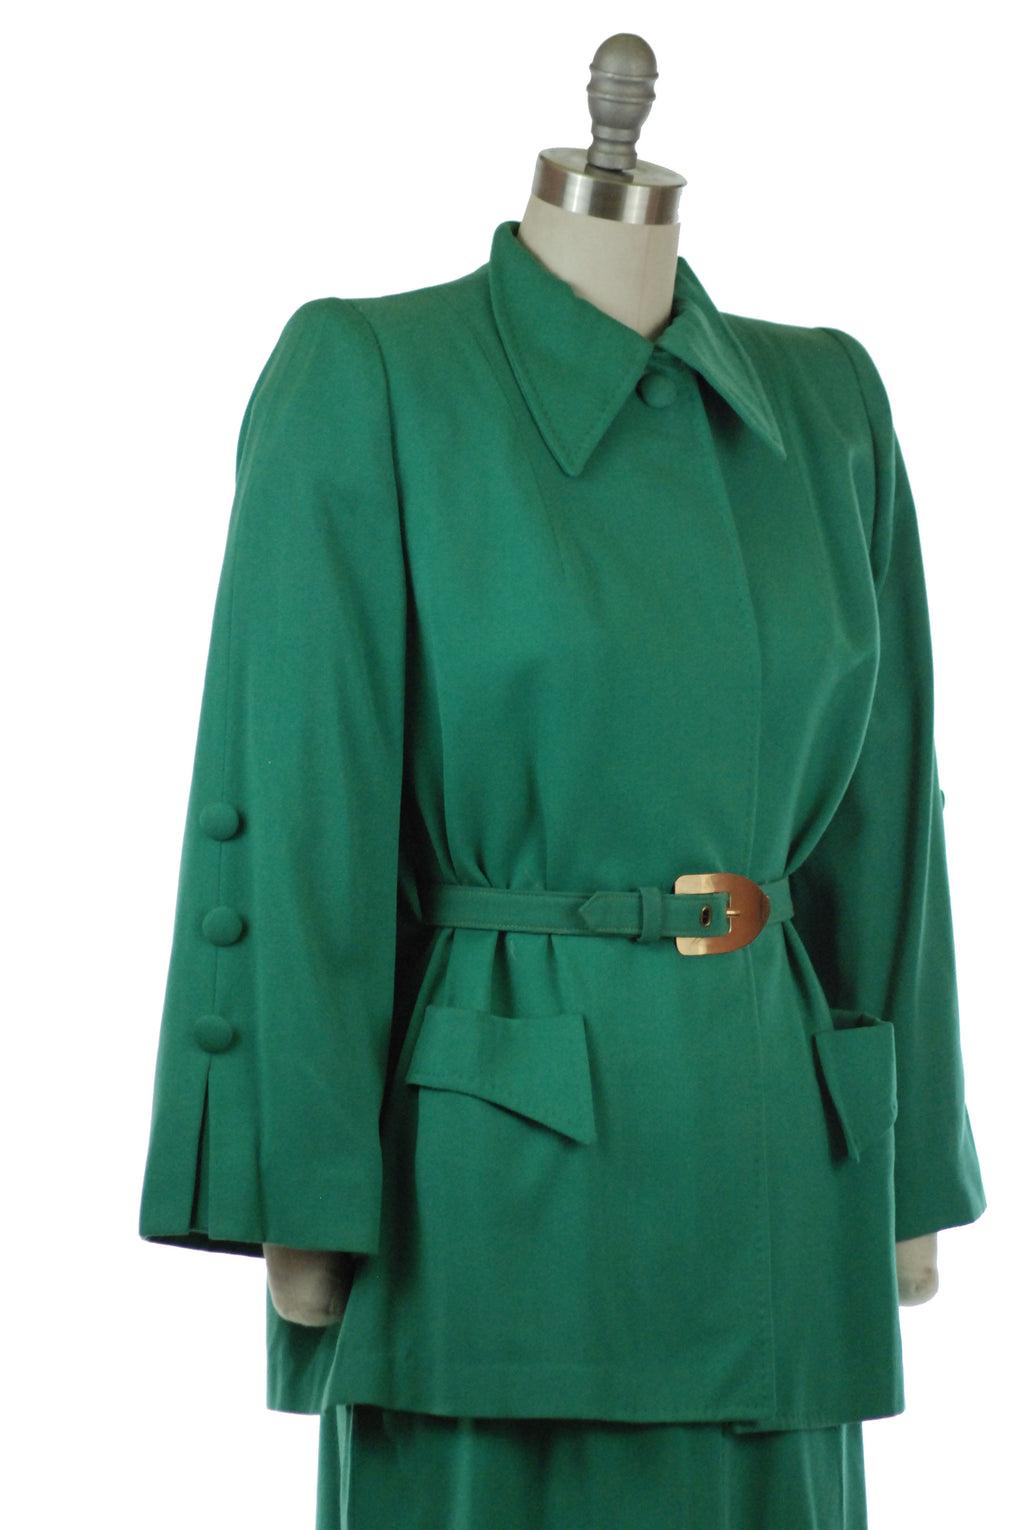 Fantastic 1940s Green Gabardine Suit with Belted, Caped Jacket and Button Accents